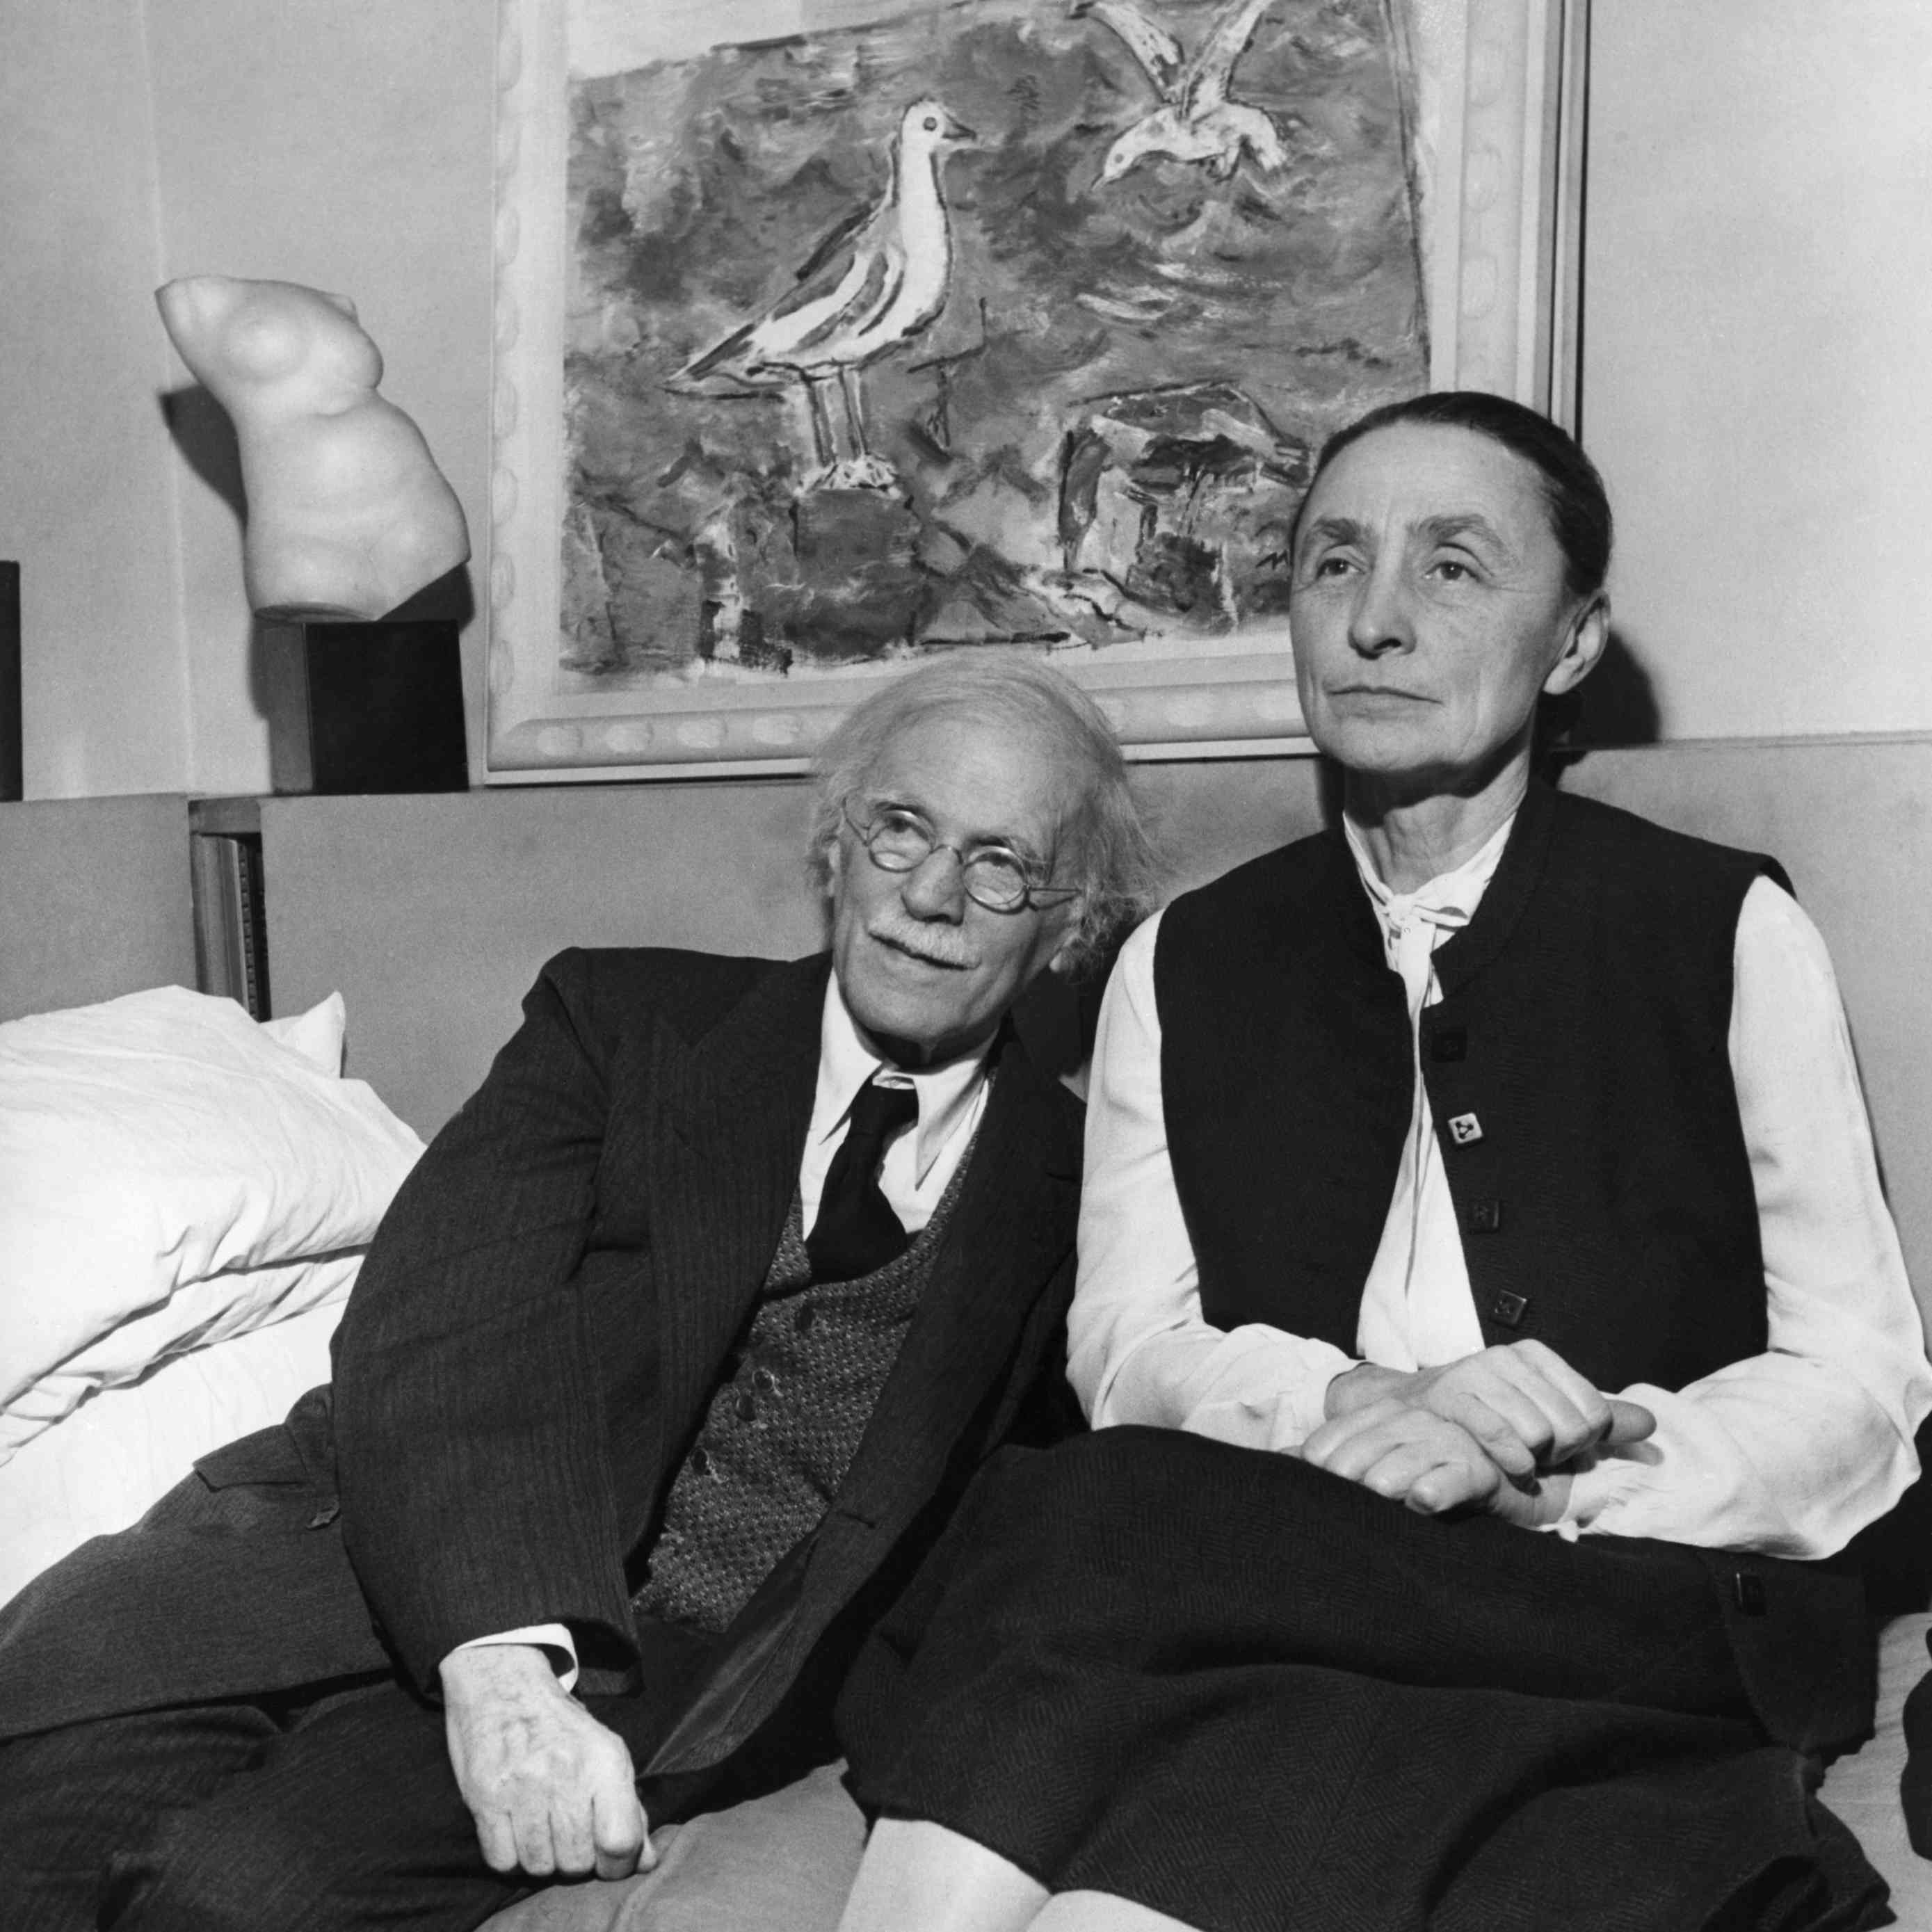 Alfred Stieglitz sits to the left of his wife Georgia O'Keeffe beneath a painting and sculpture